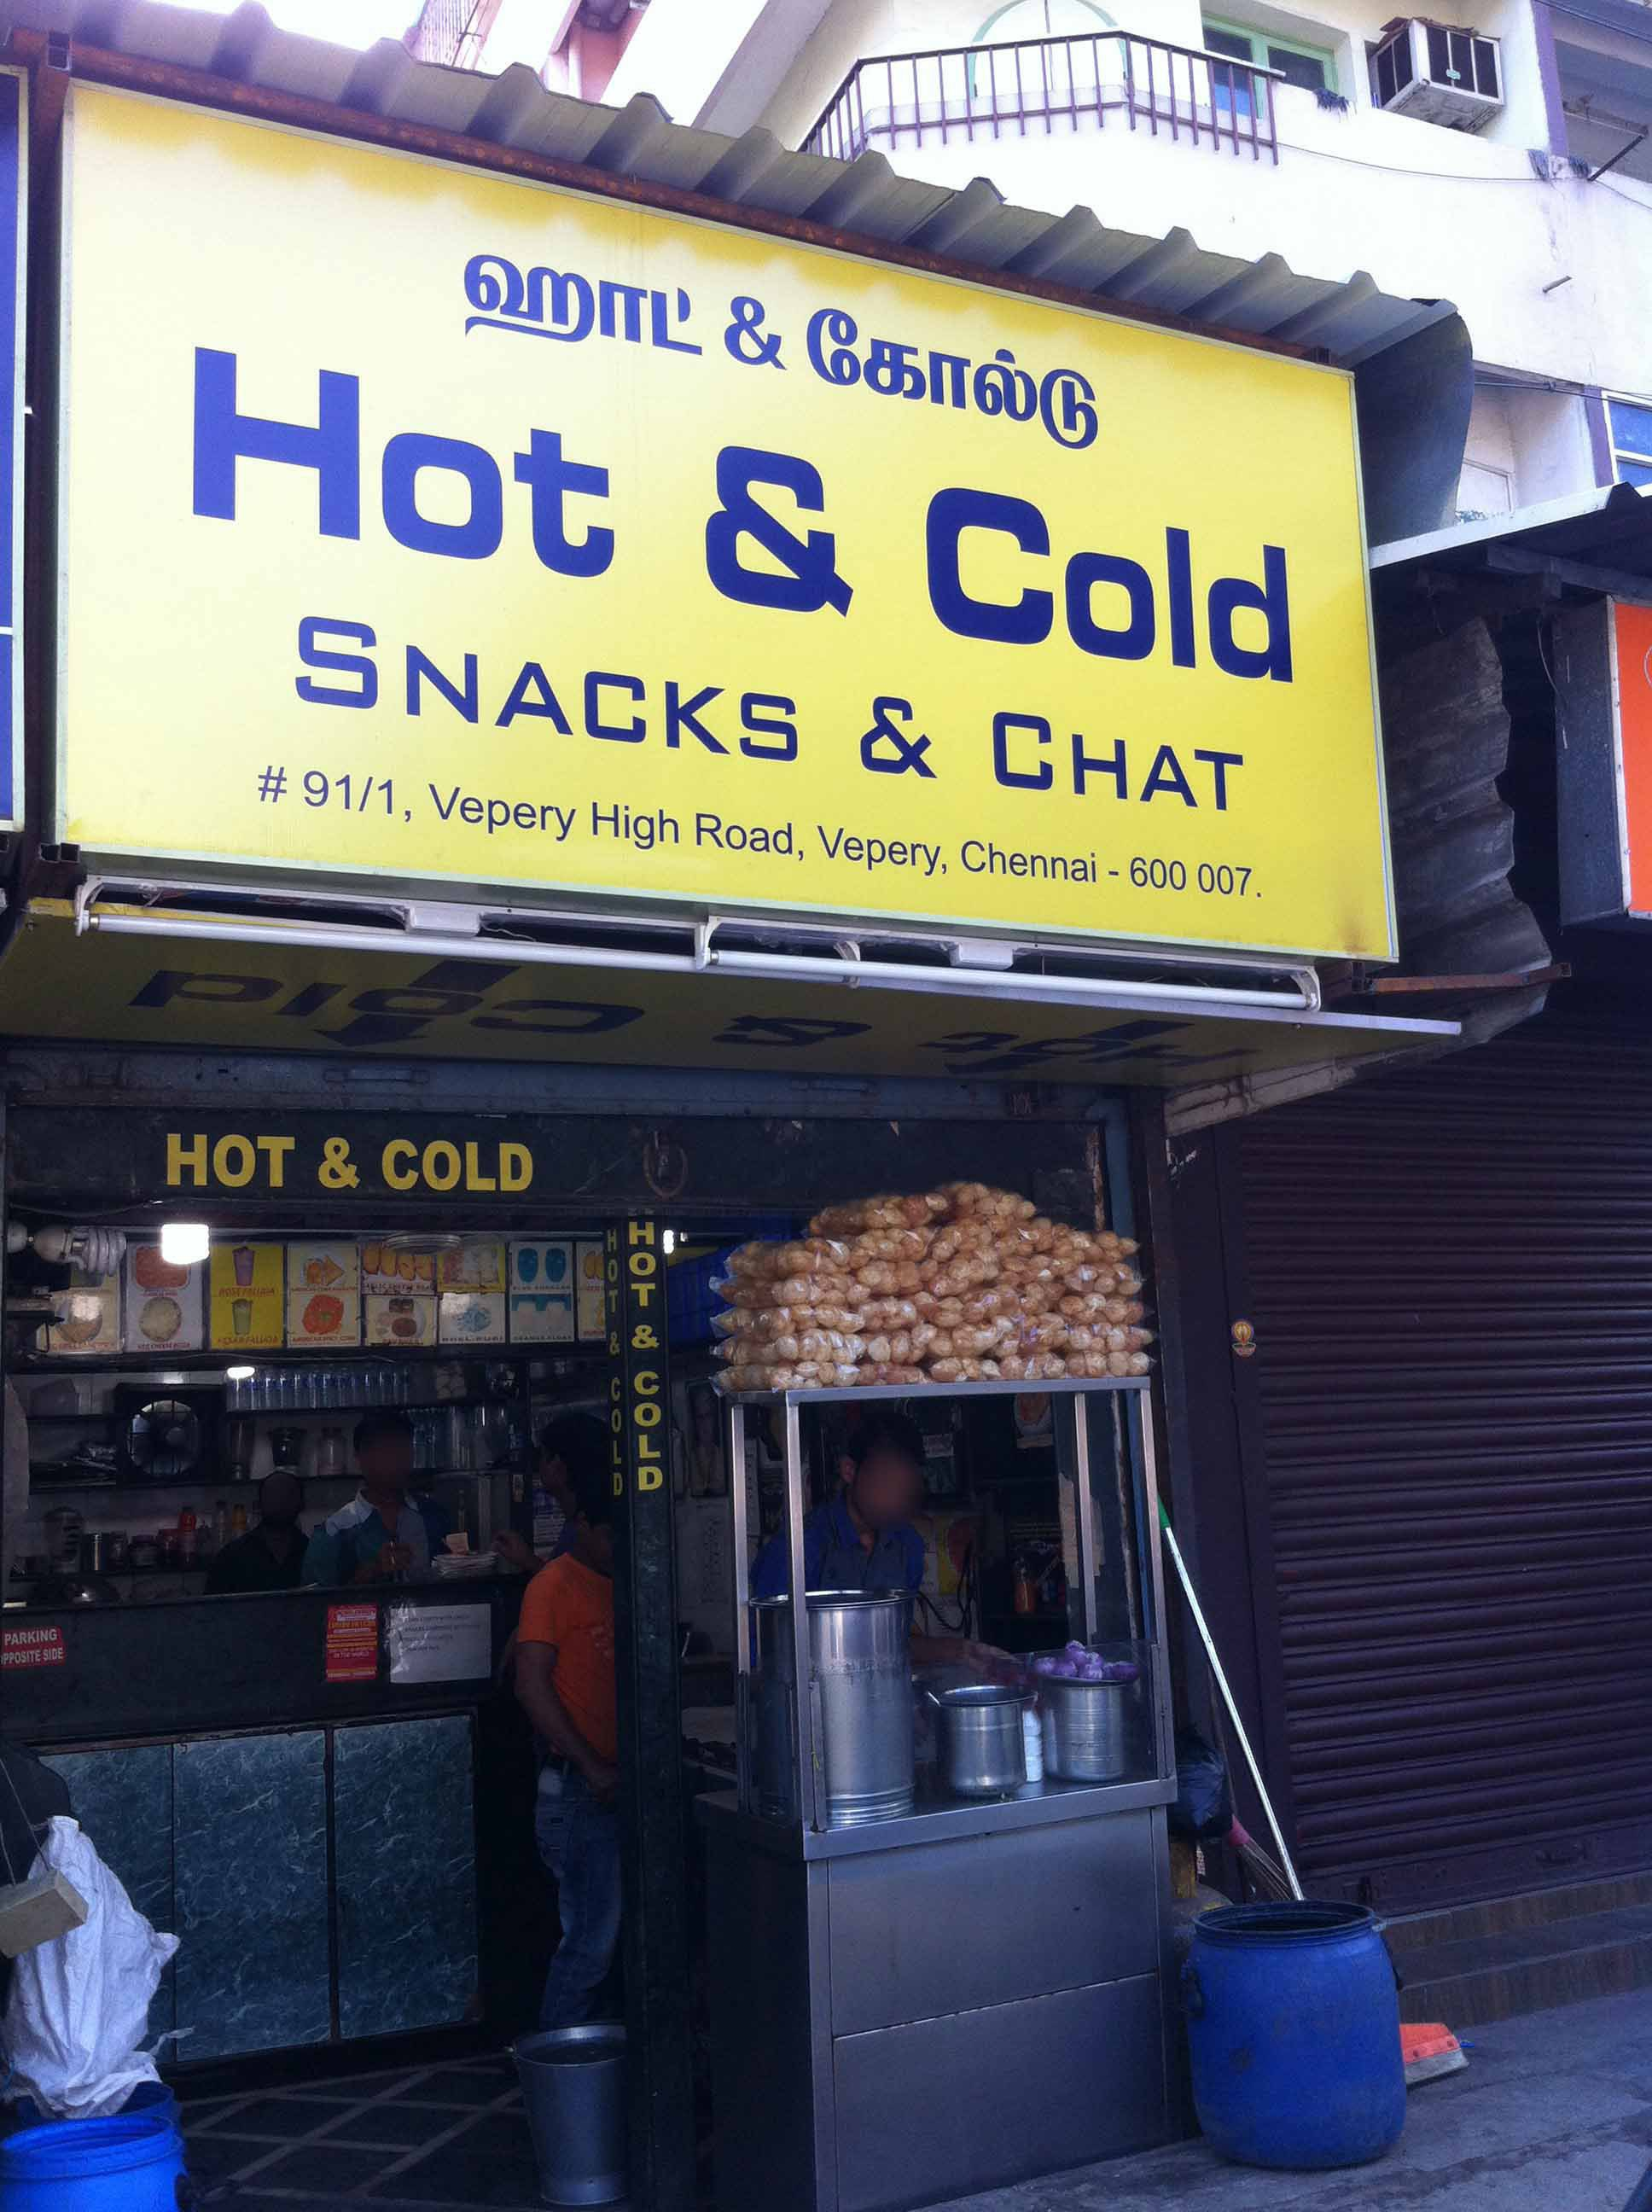 Hot And Cold - Vepery - Chennai Image